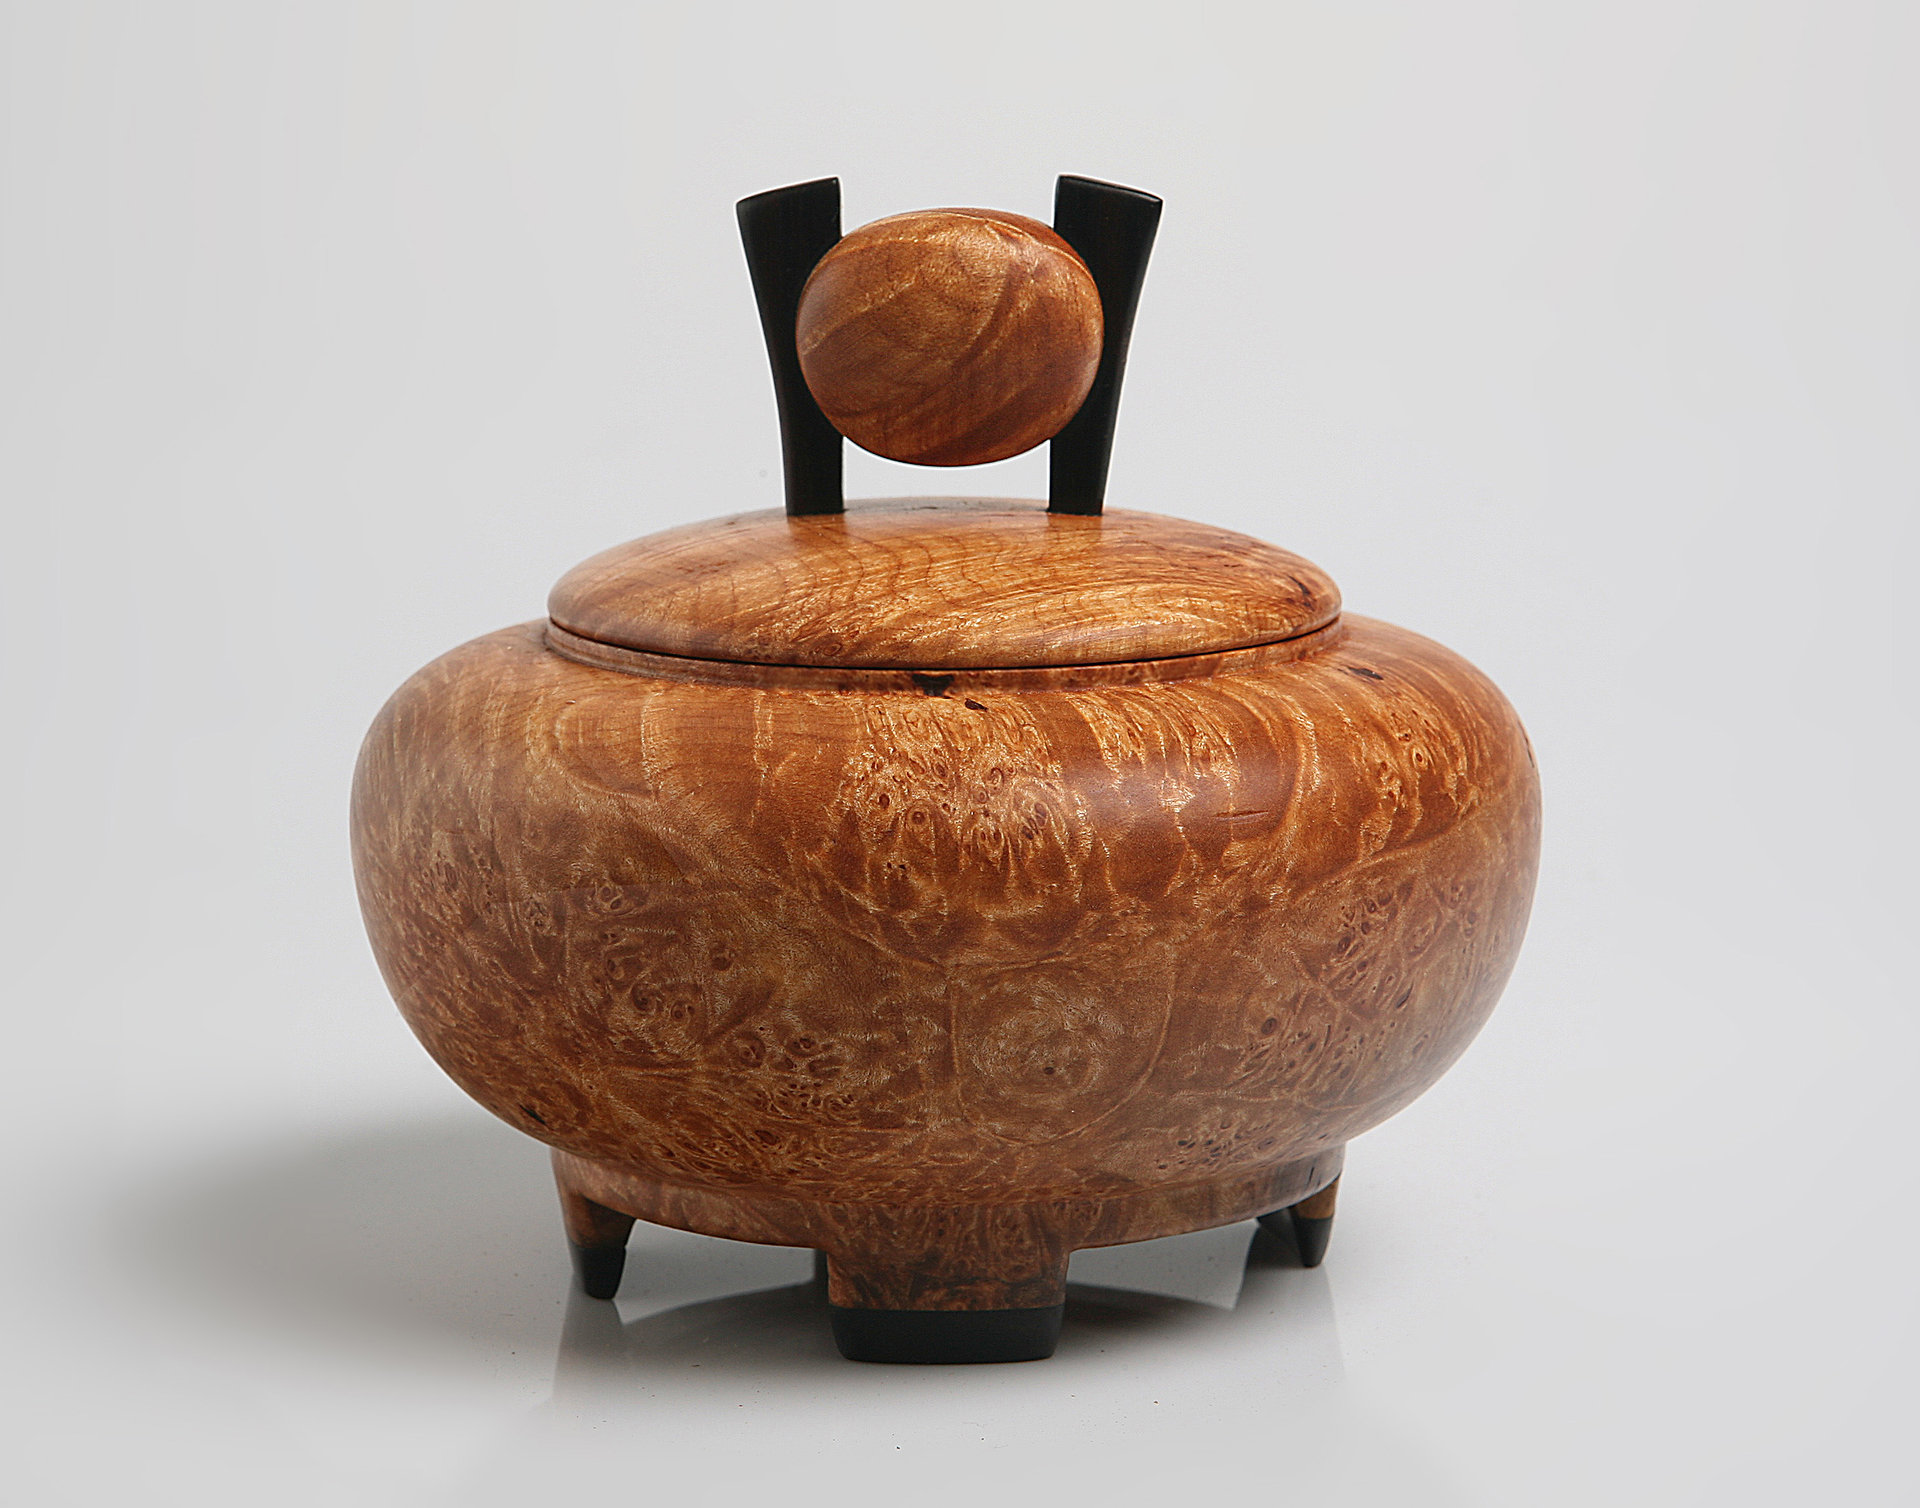 Closed form wood turning